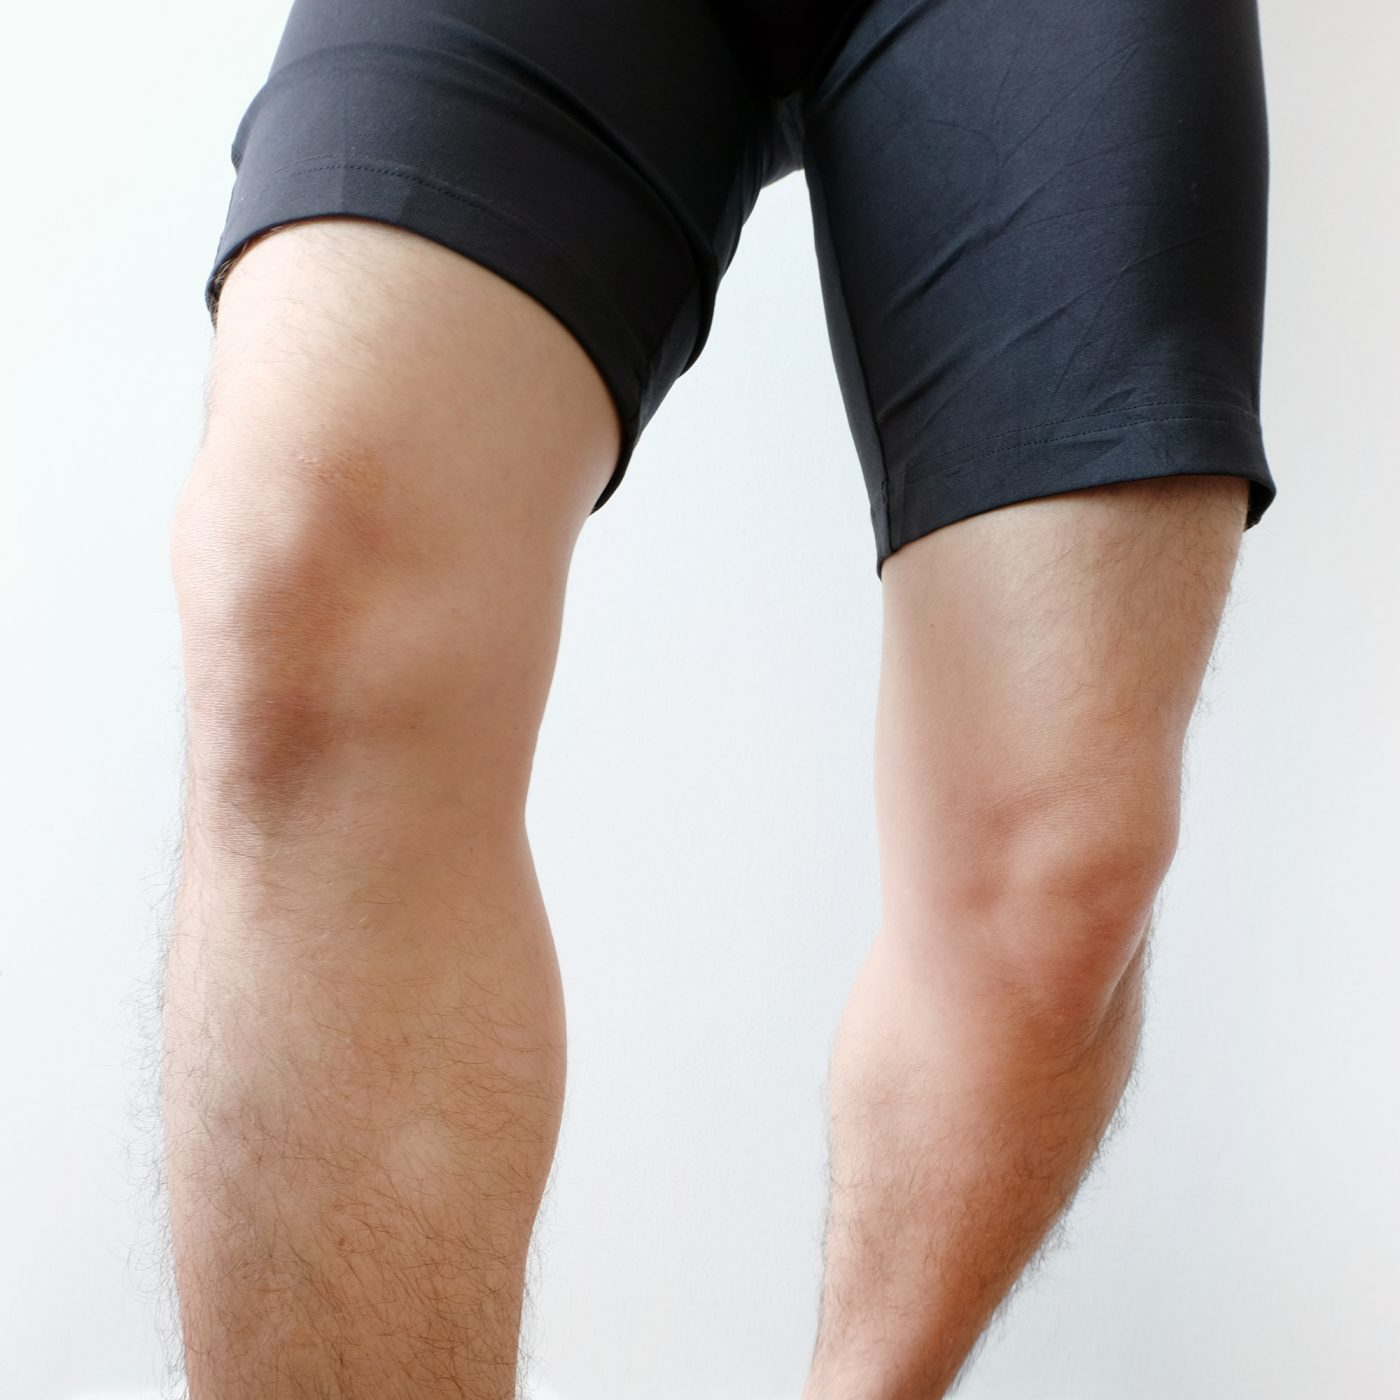 male athlete knees